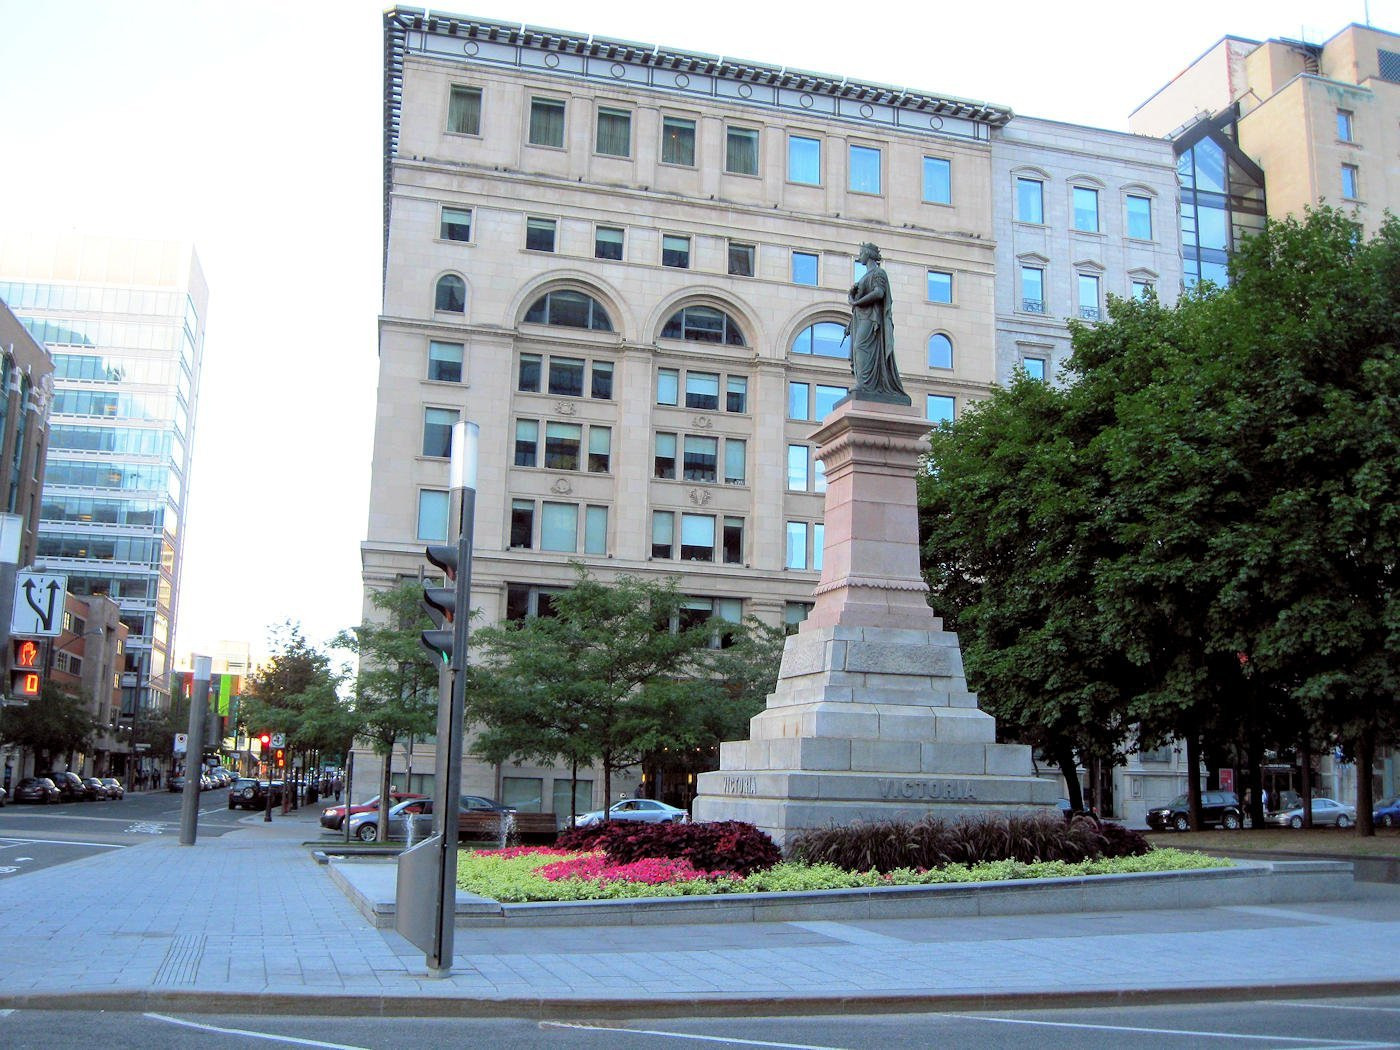 A photo of the statue of the Queen Victoria adorning the Victoria Square is the work of sculptor Marshall Wood (1820–1882), and was unveiled in 1872 by Lord Dufferin, the Governor General of Canada. At the time, the area surrounding Victoria Square was a prestigious neighbourhood